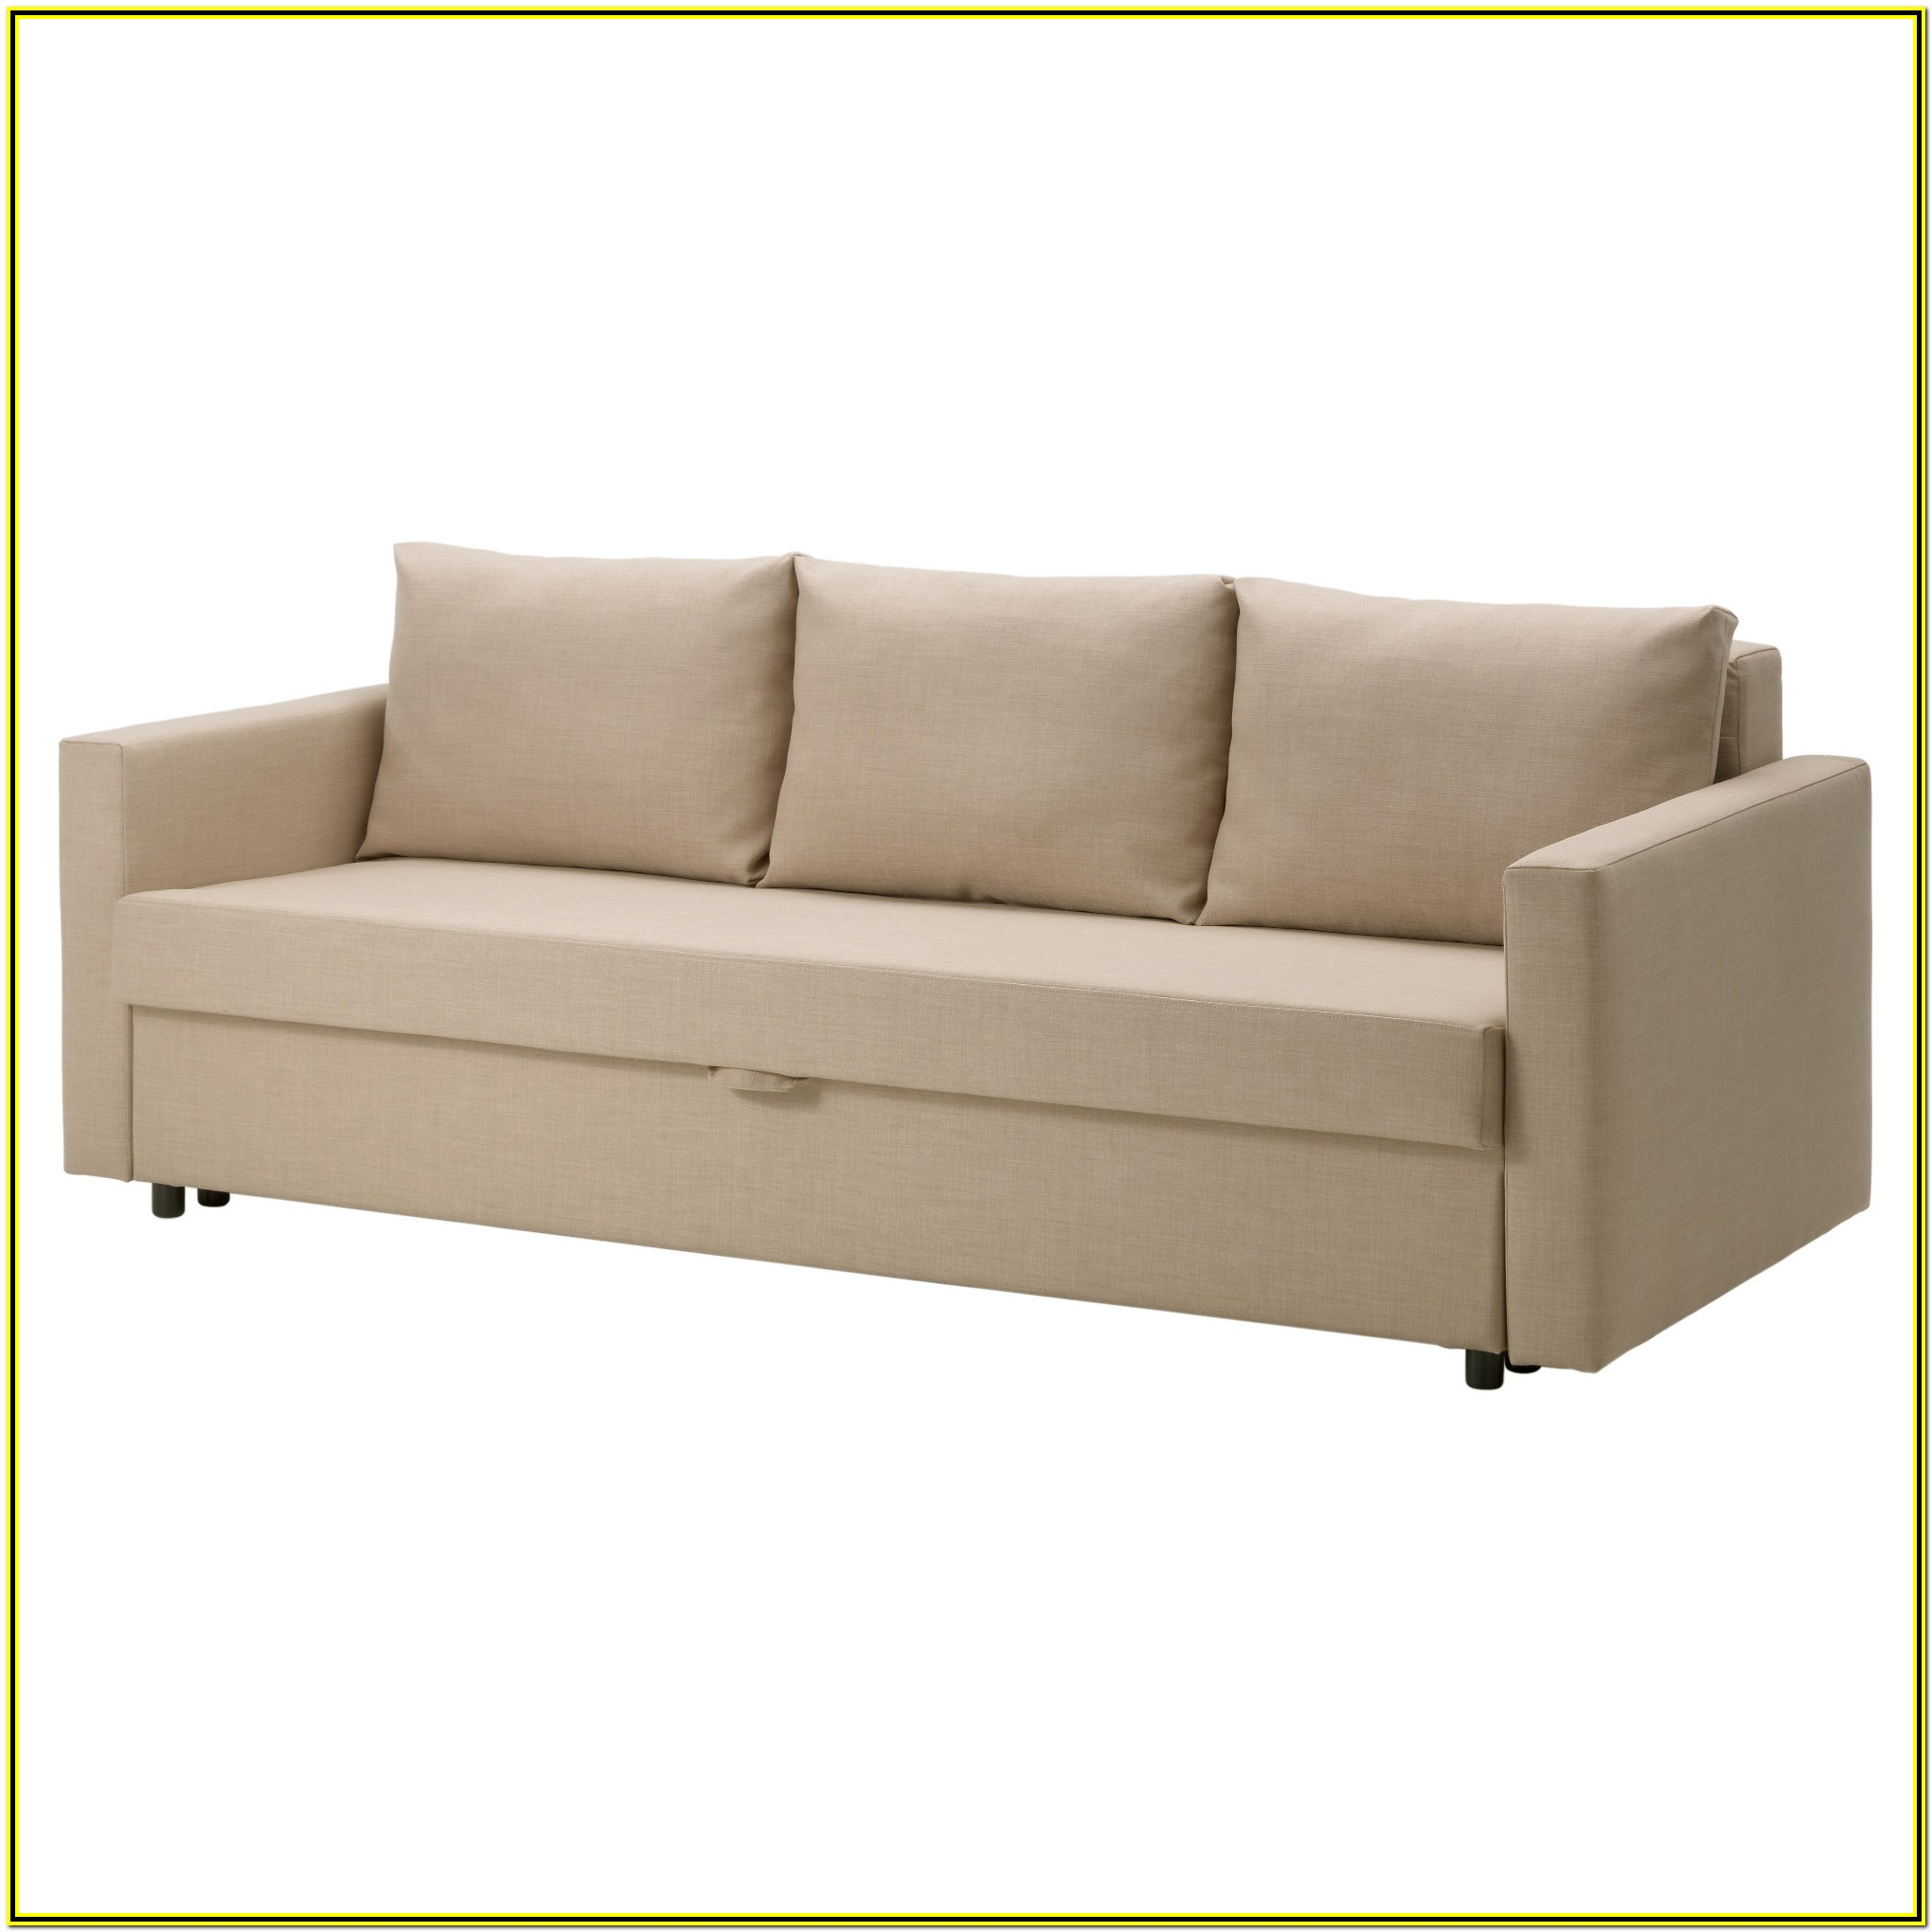 Marvelous Loveseat Pull Out Sofa Bed Bedroom Home Decorating Ideas Theyellowbook Wood Chair Design Ideas Theyellowbookinfo